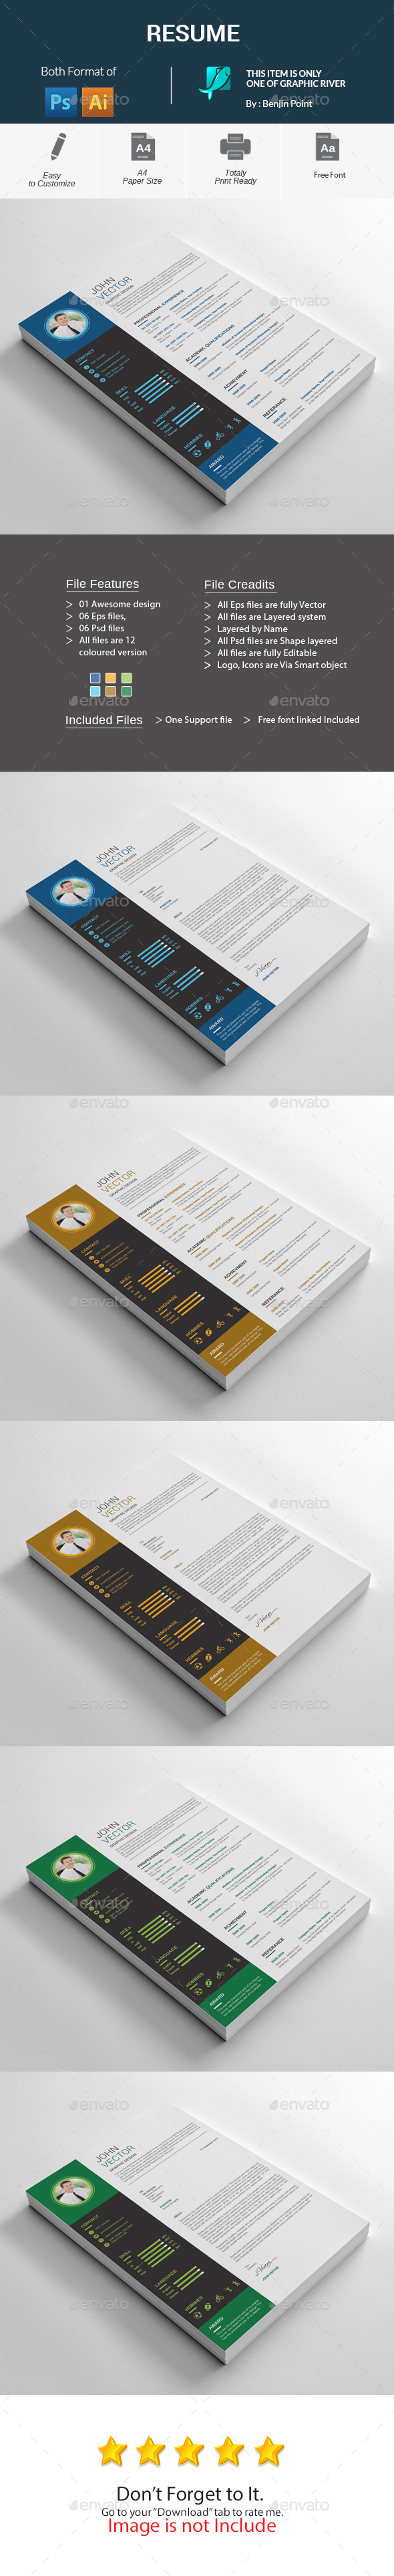 GraphicRiver Resume 20631400